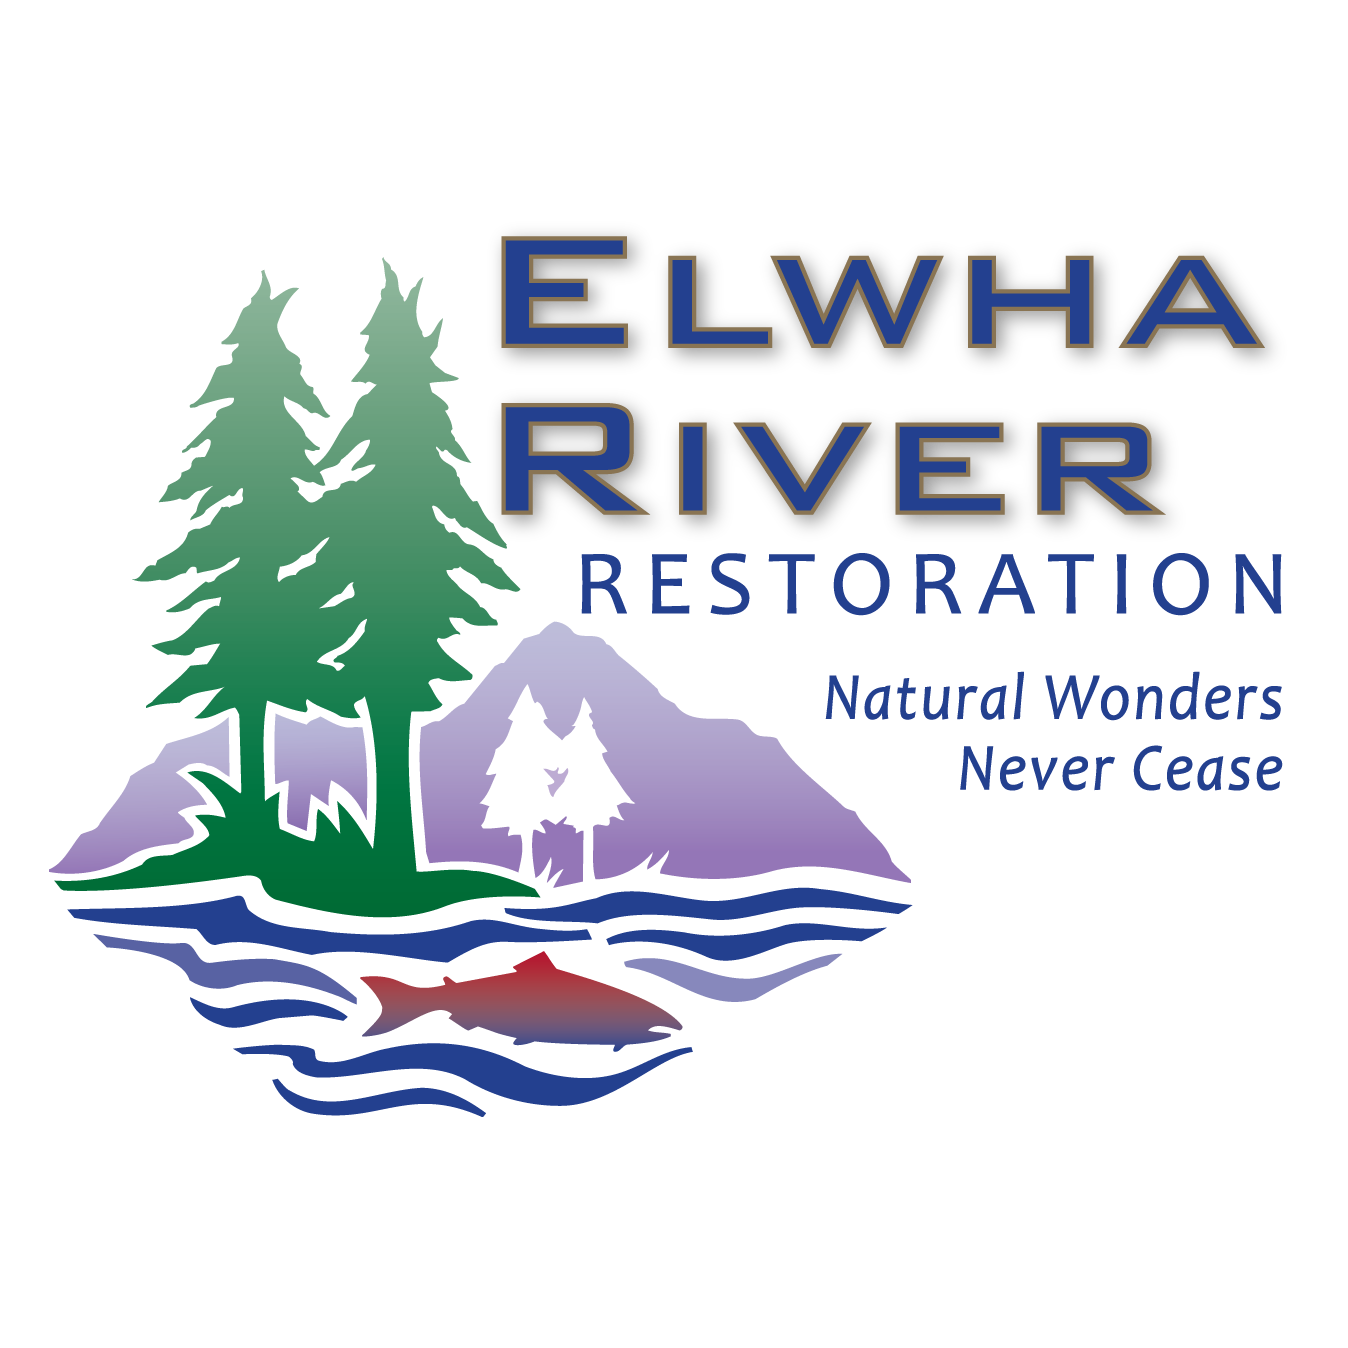 Learn more about Elwha River Restoration